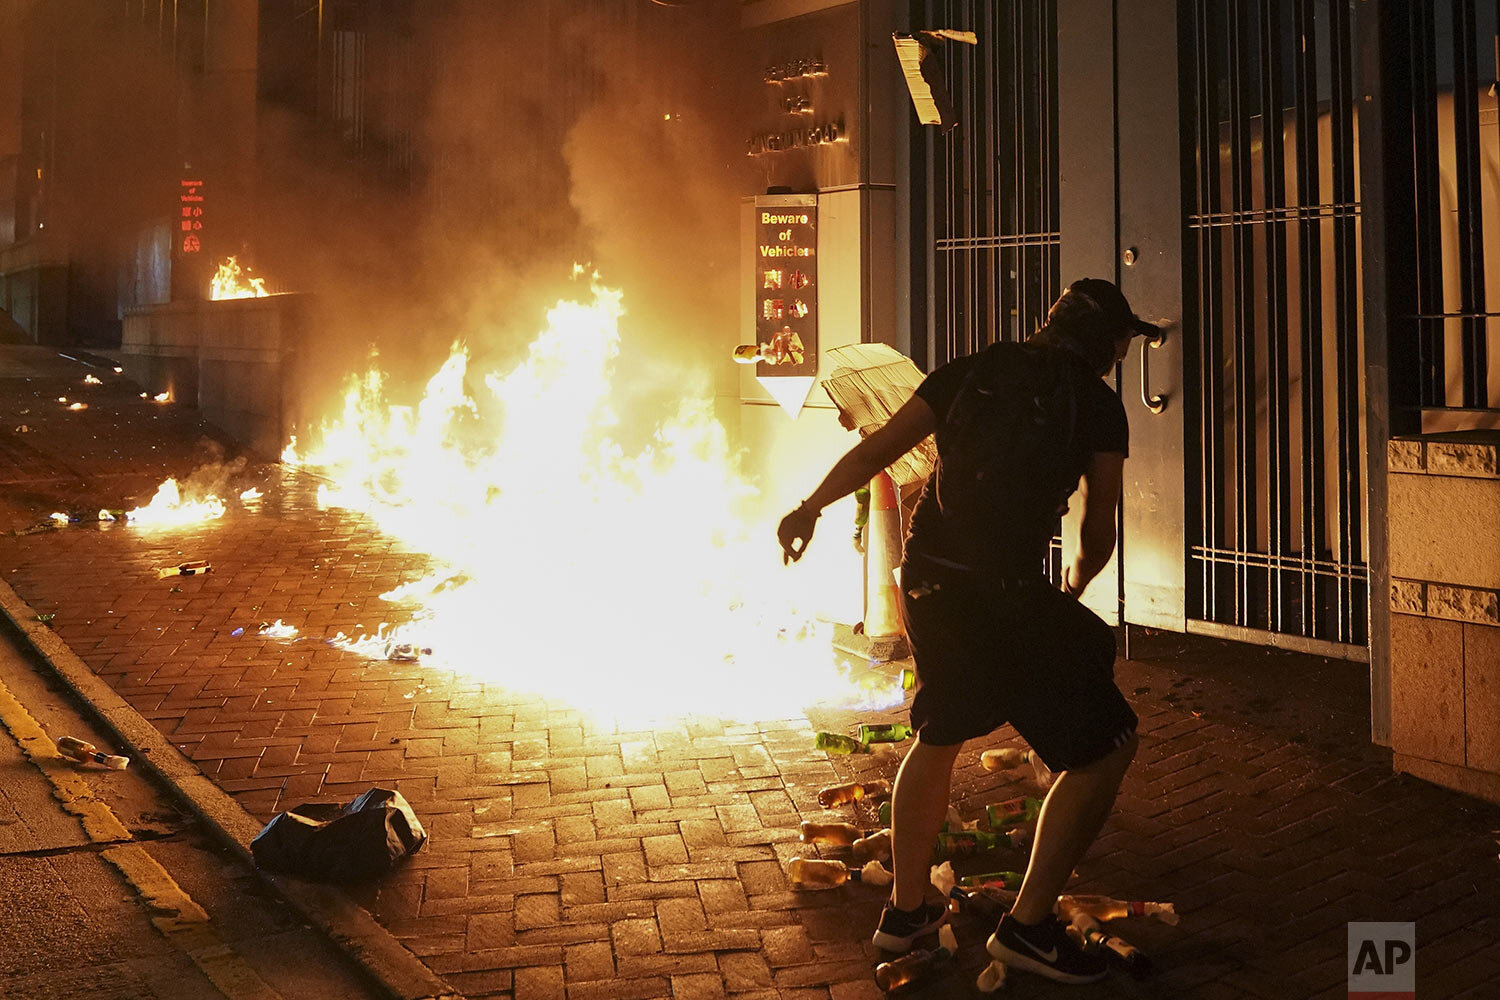 Protesters throw petrol bomb outside the Tsuen Wan police station in Hong Kong, Wednesday, Oct. 2, 2019.  (AP Photo/Vincent Thian)